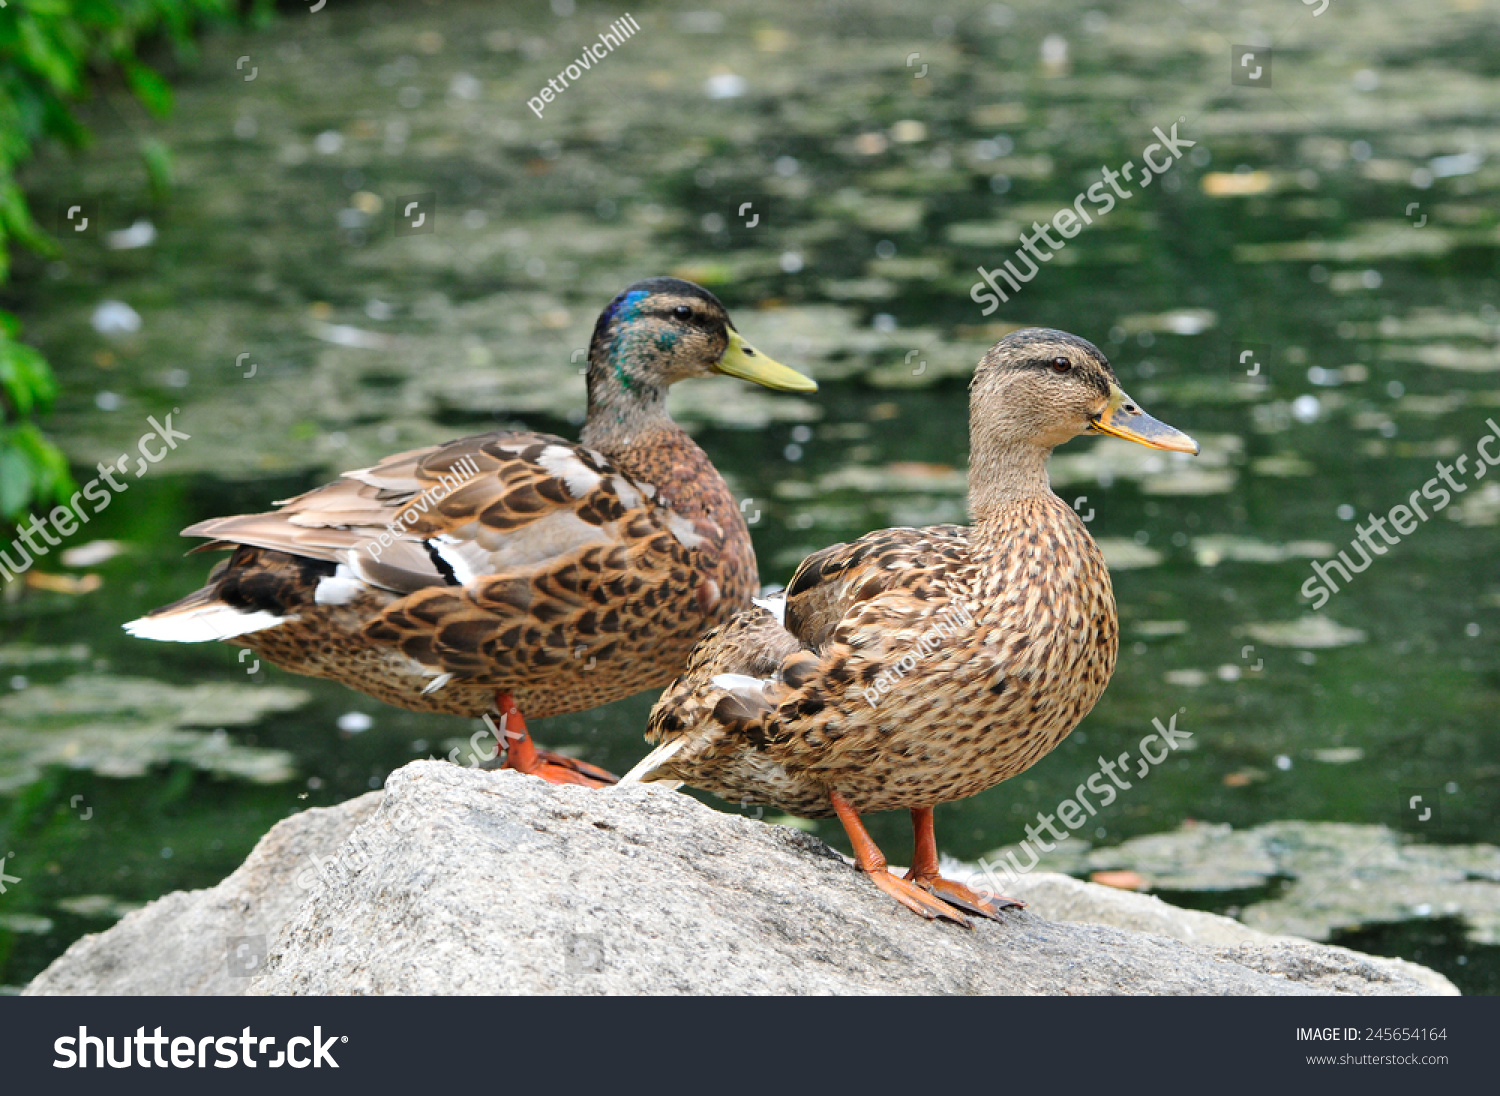 how to tell a male from a female mallard duck